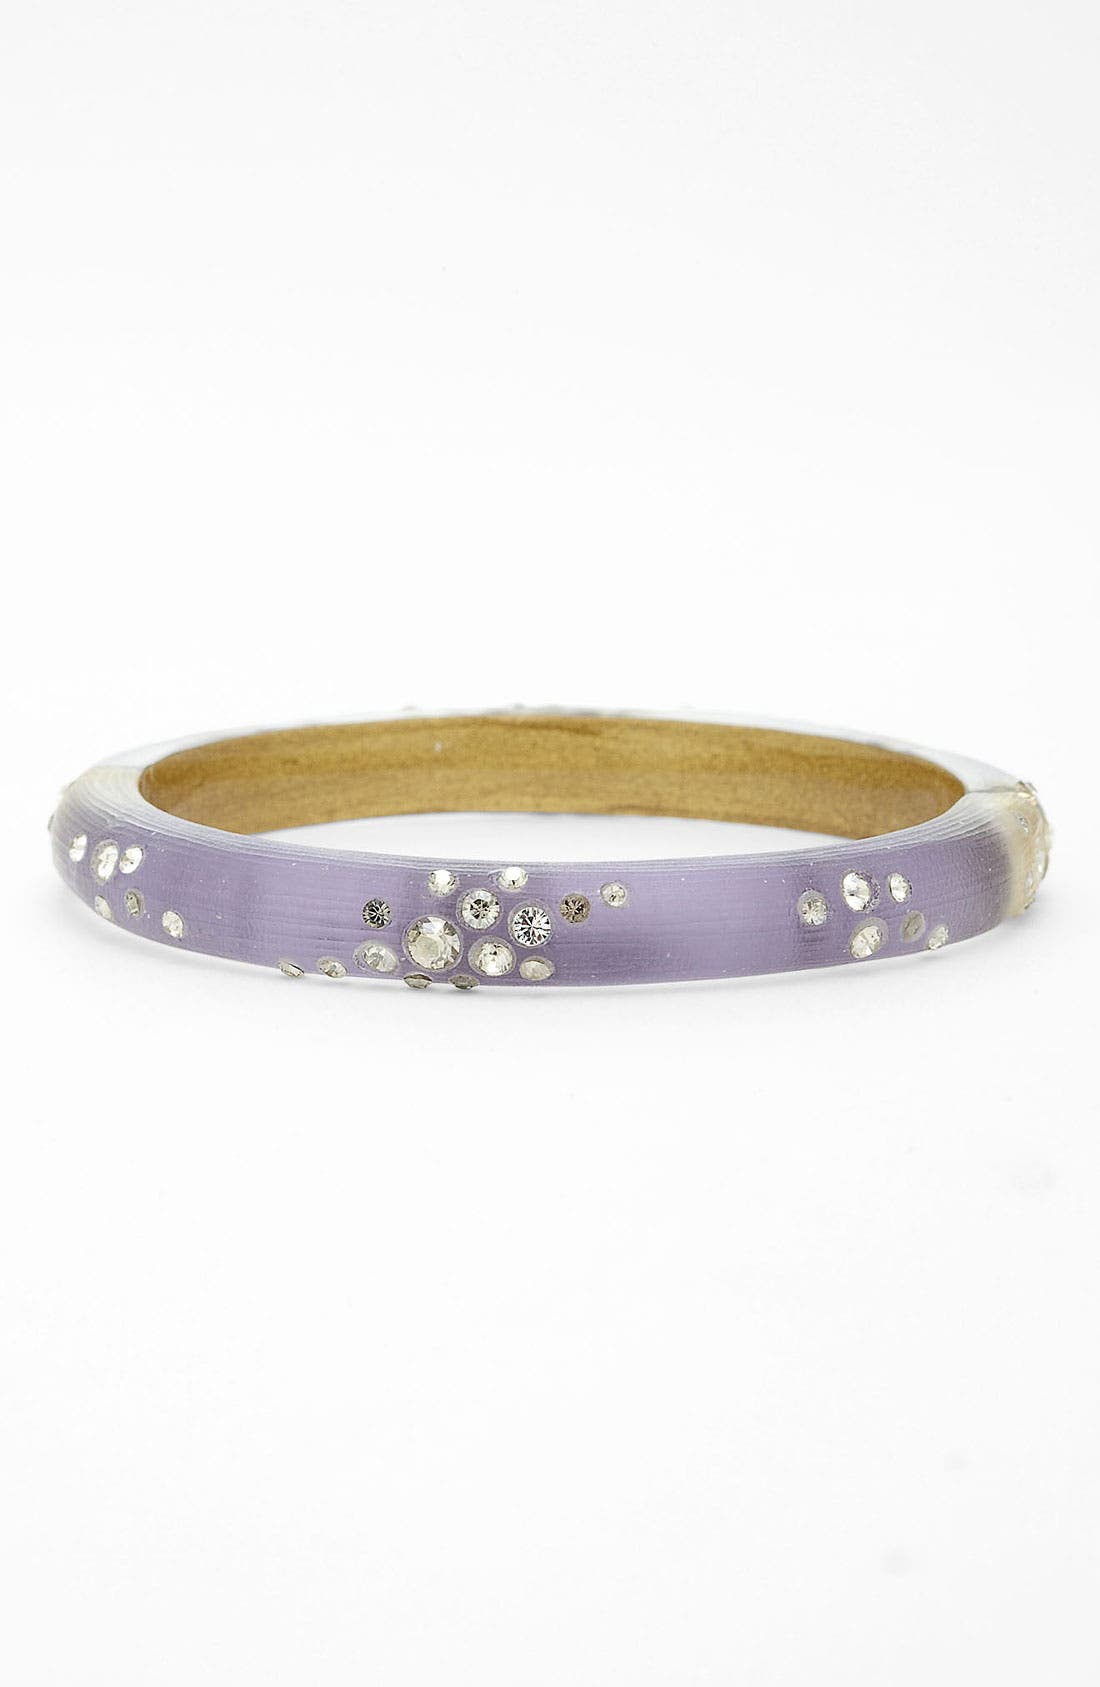 Alternate Image 1 Selected - Alexis Bittar 'Lucite® - Dust' Small Hinged Bracelet (Nordstrom Exclusive)